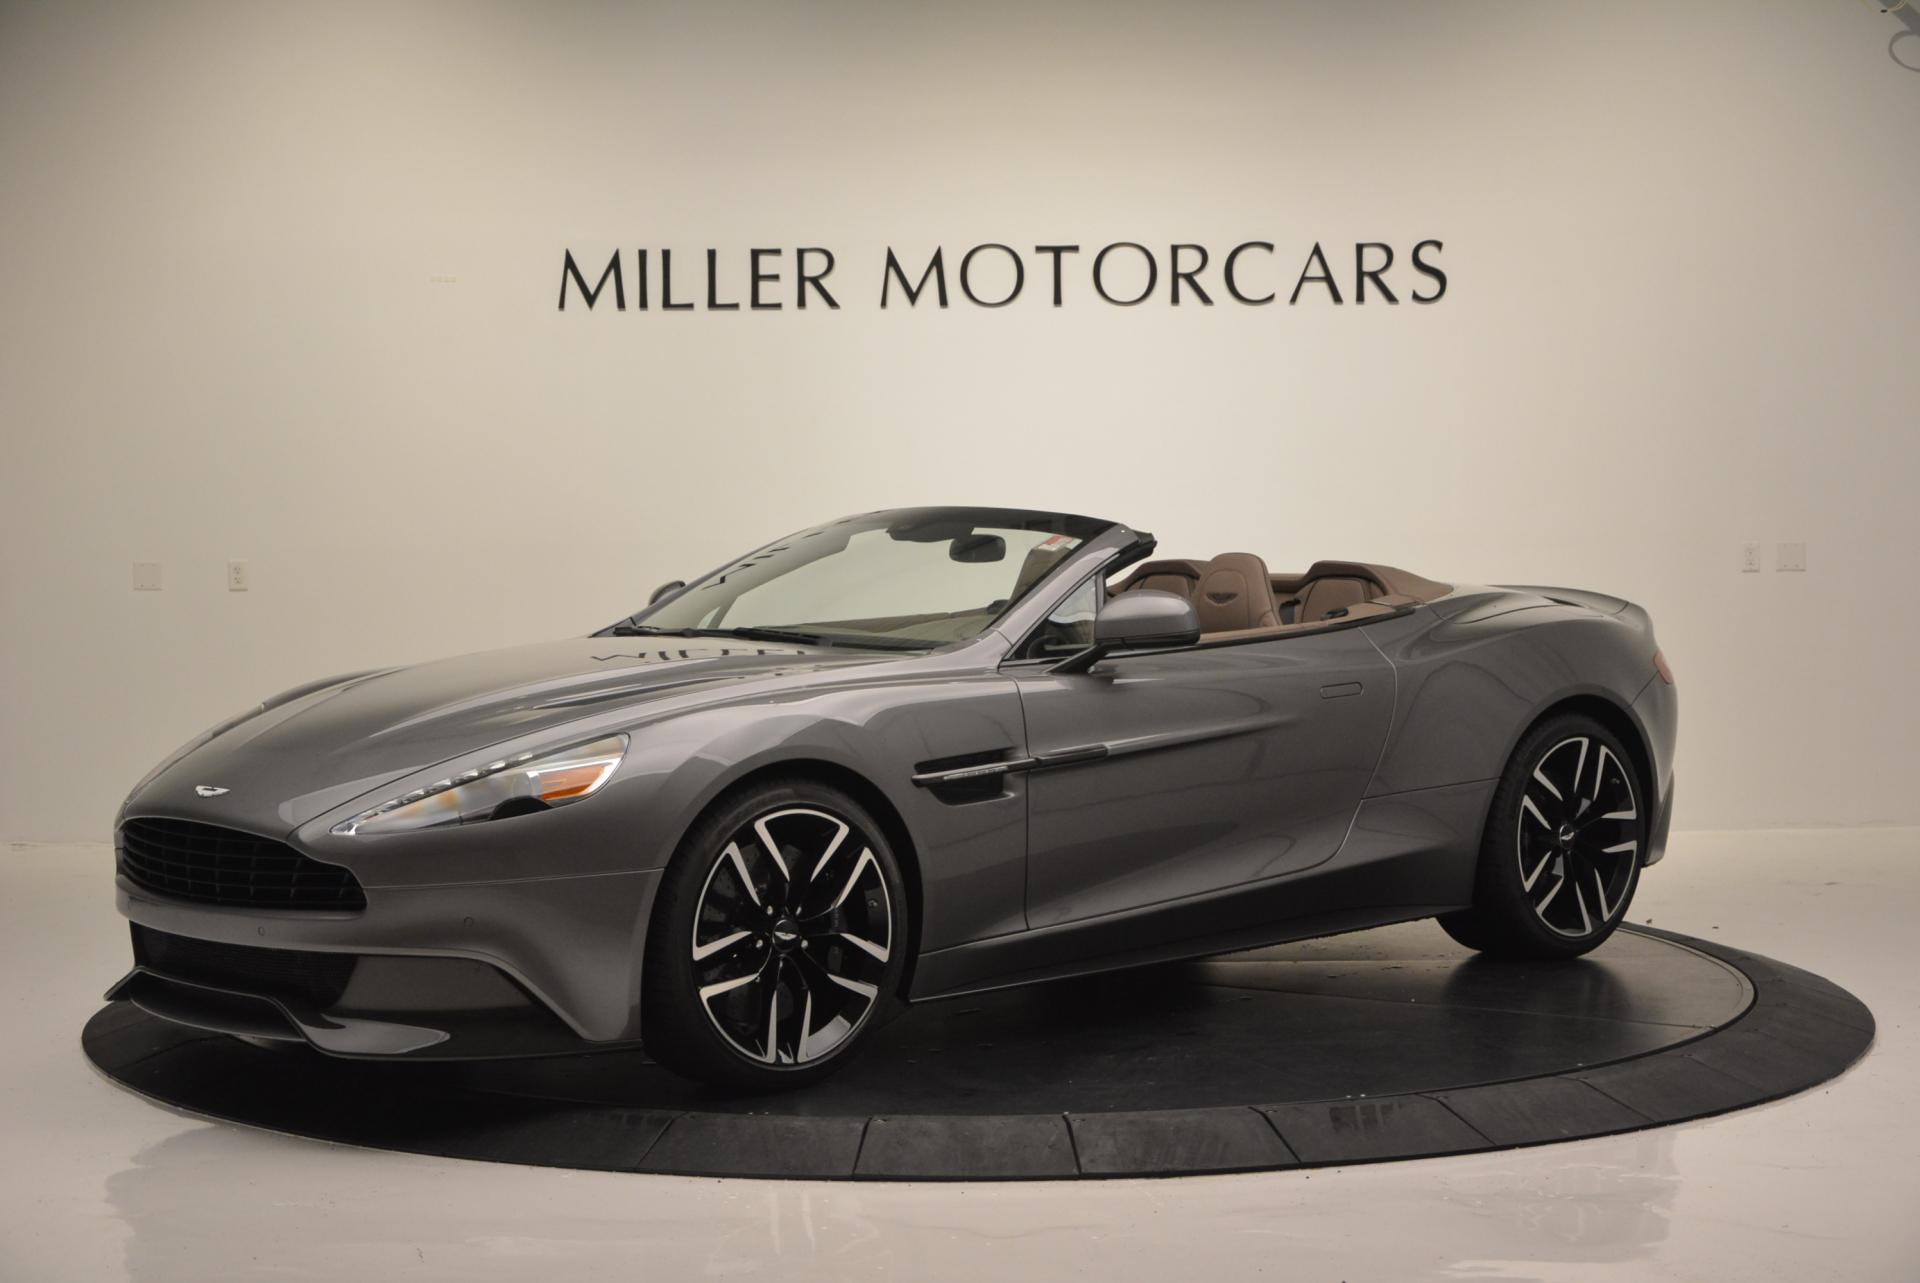 New 2016 Aston Martin Vanquish Volante For Sale In Greenwich, CT 522_p2